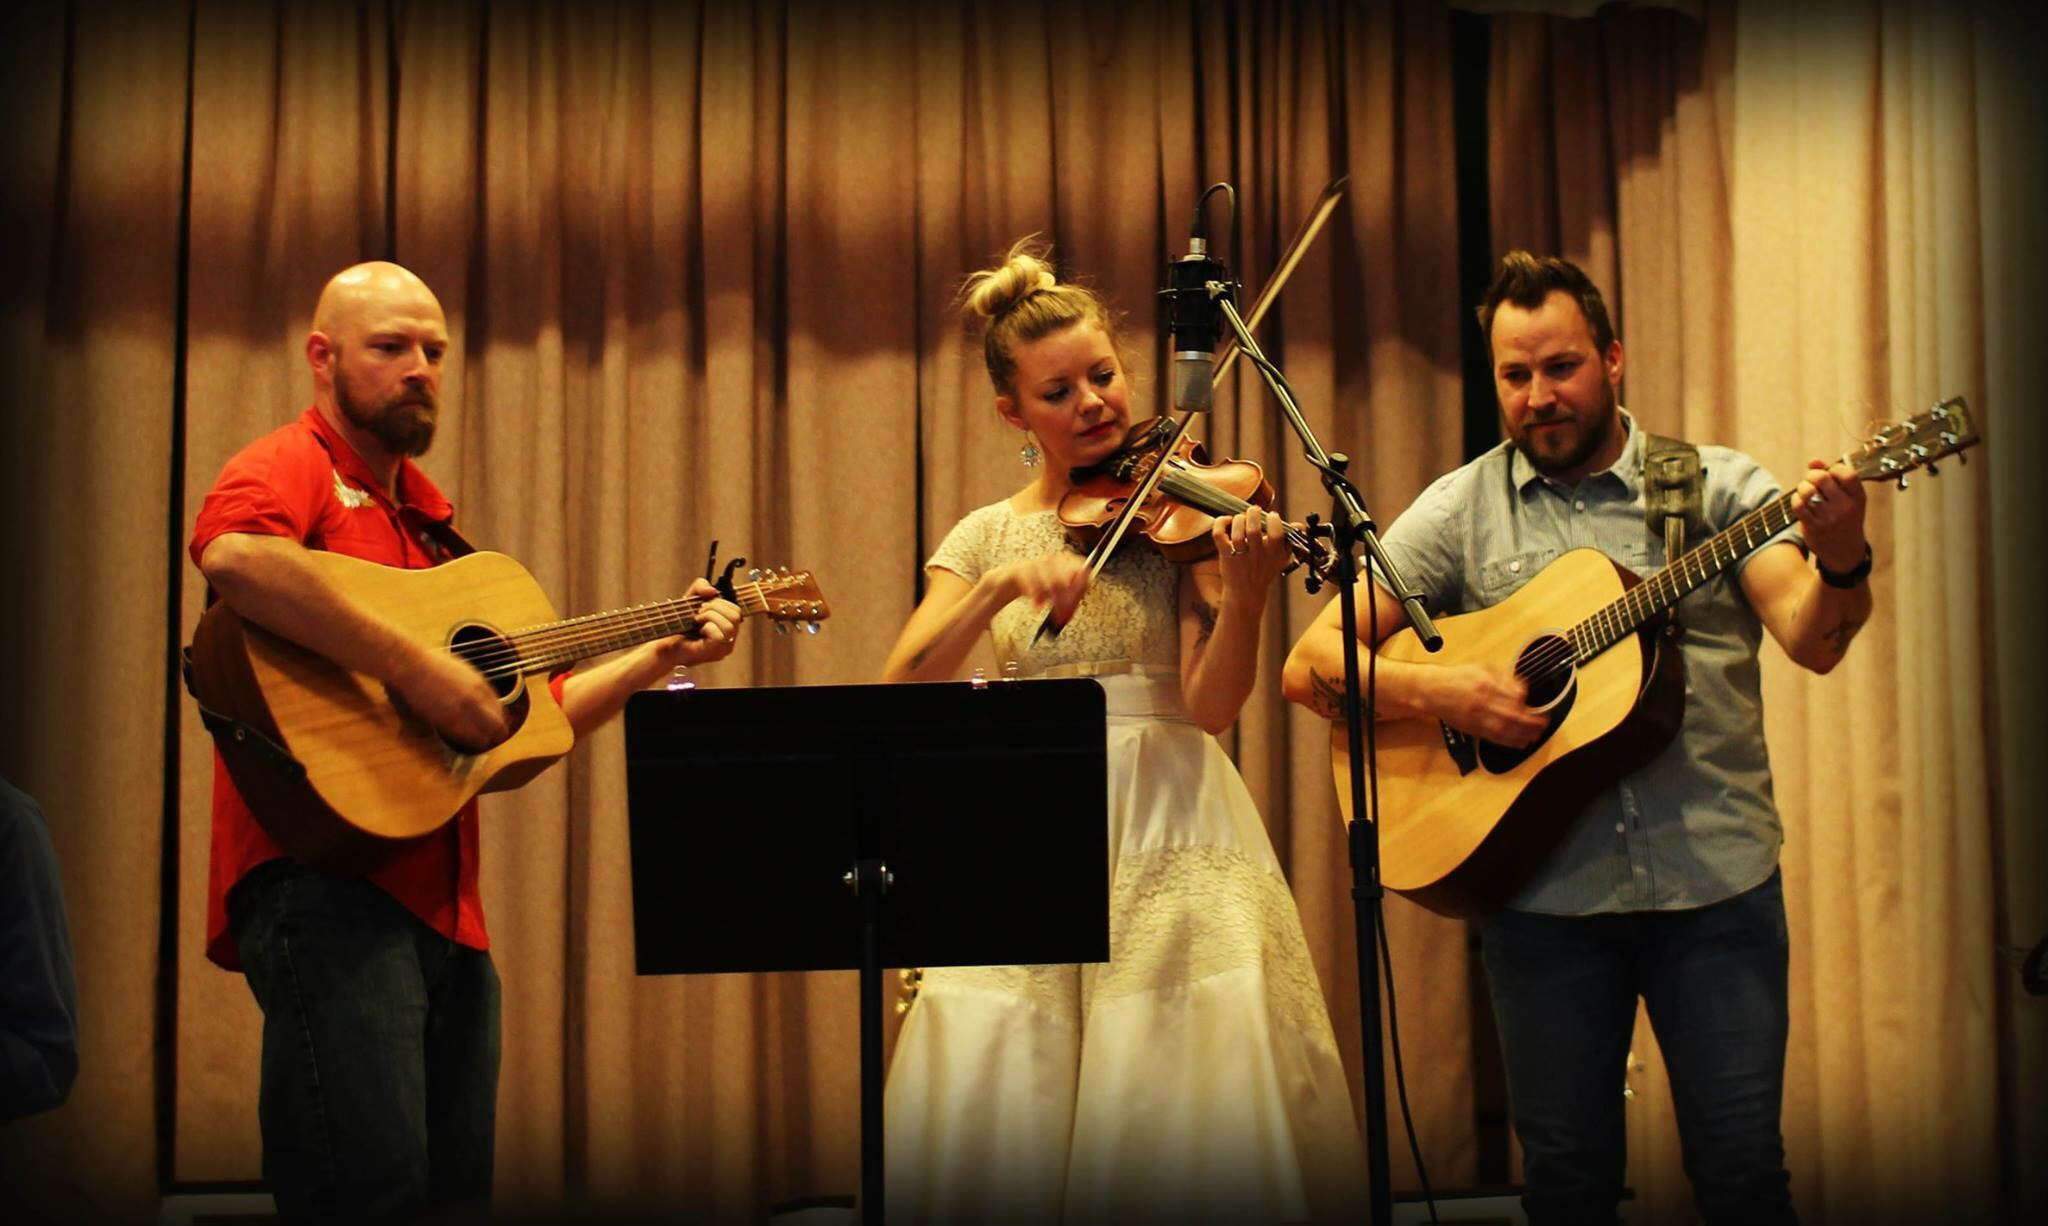 Kevin Morgan, Jenny Anne Mannan and Jacob Mannan bust it like a mule.